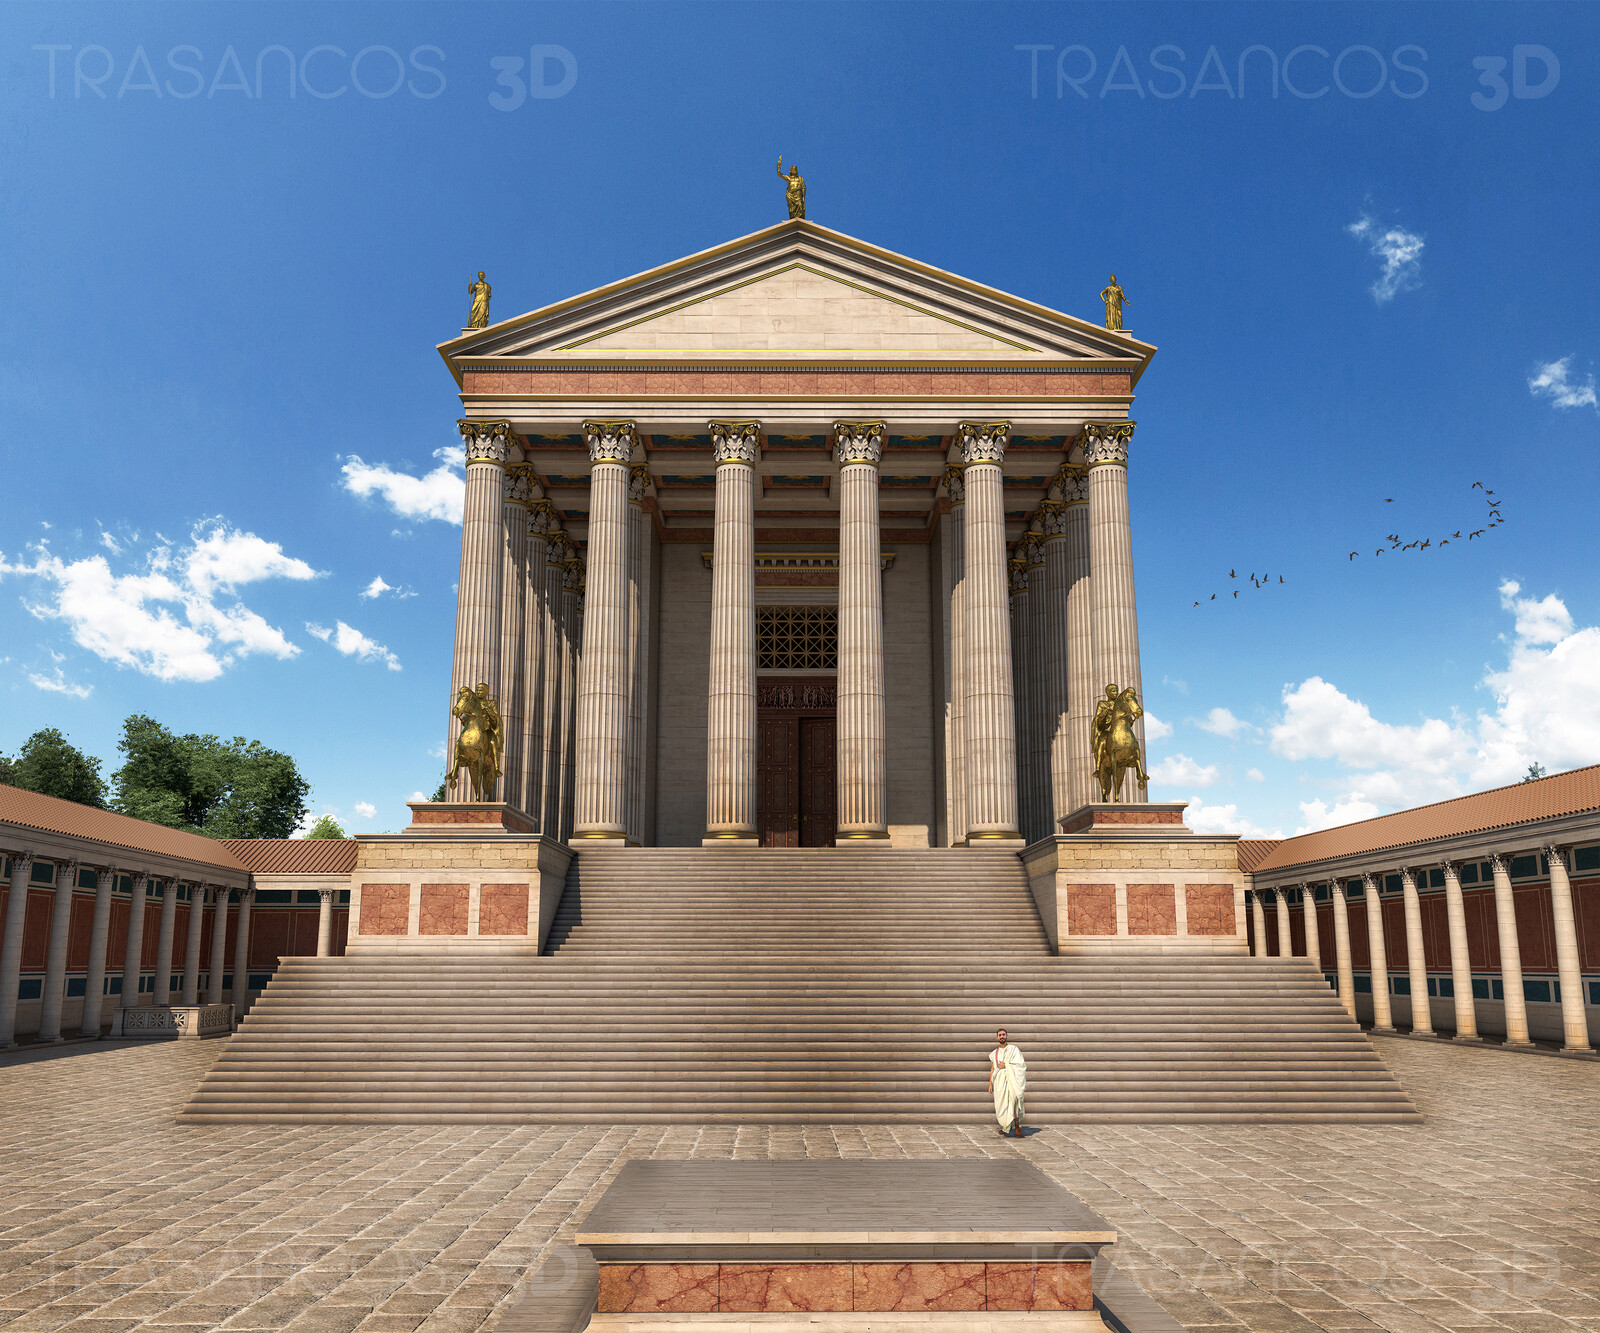 View of the reconstructed roman Capitol of Timgad. Modeled in collaboration with: - Alejandro Soriano